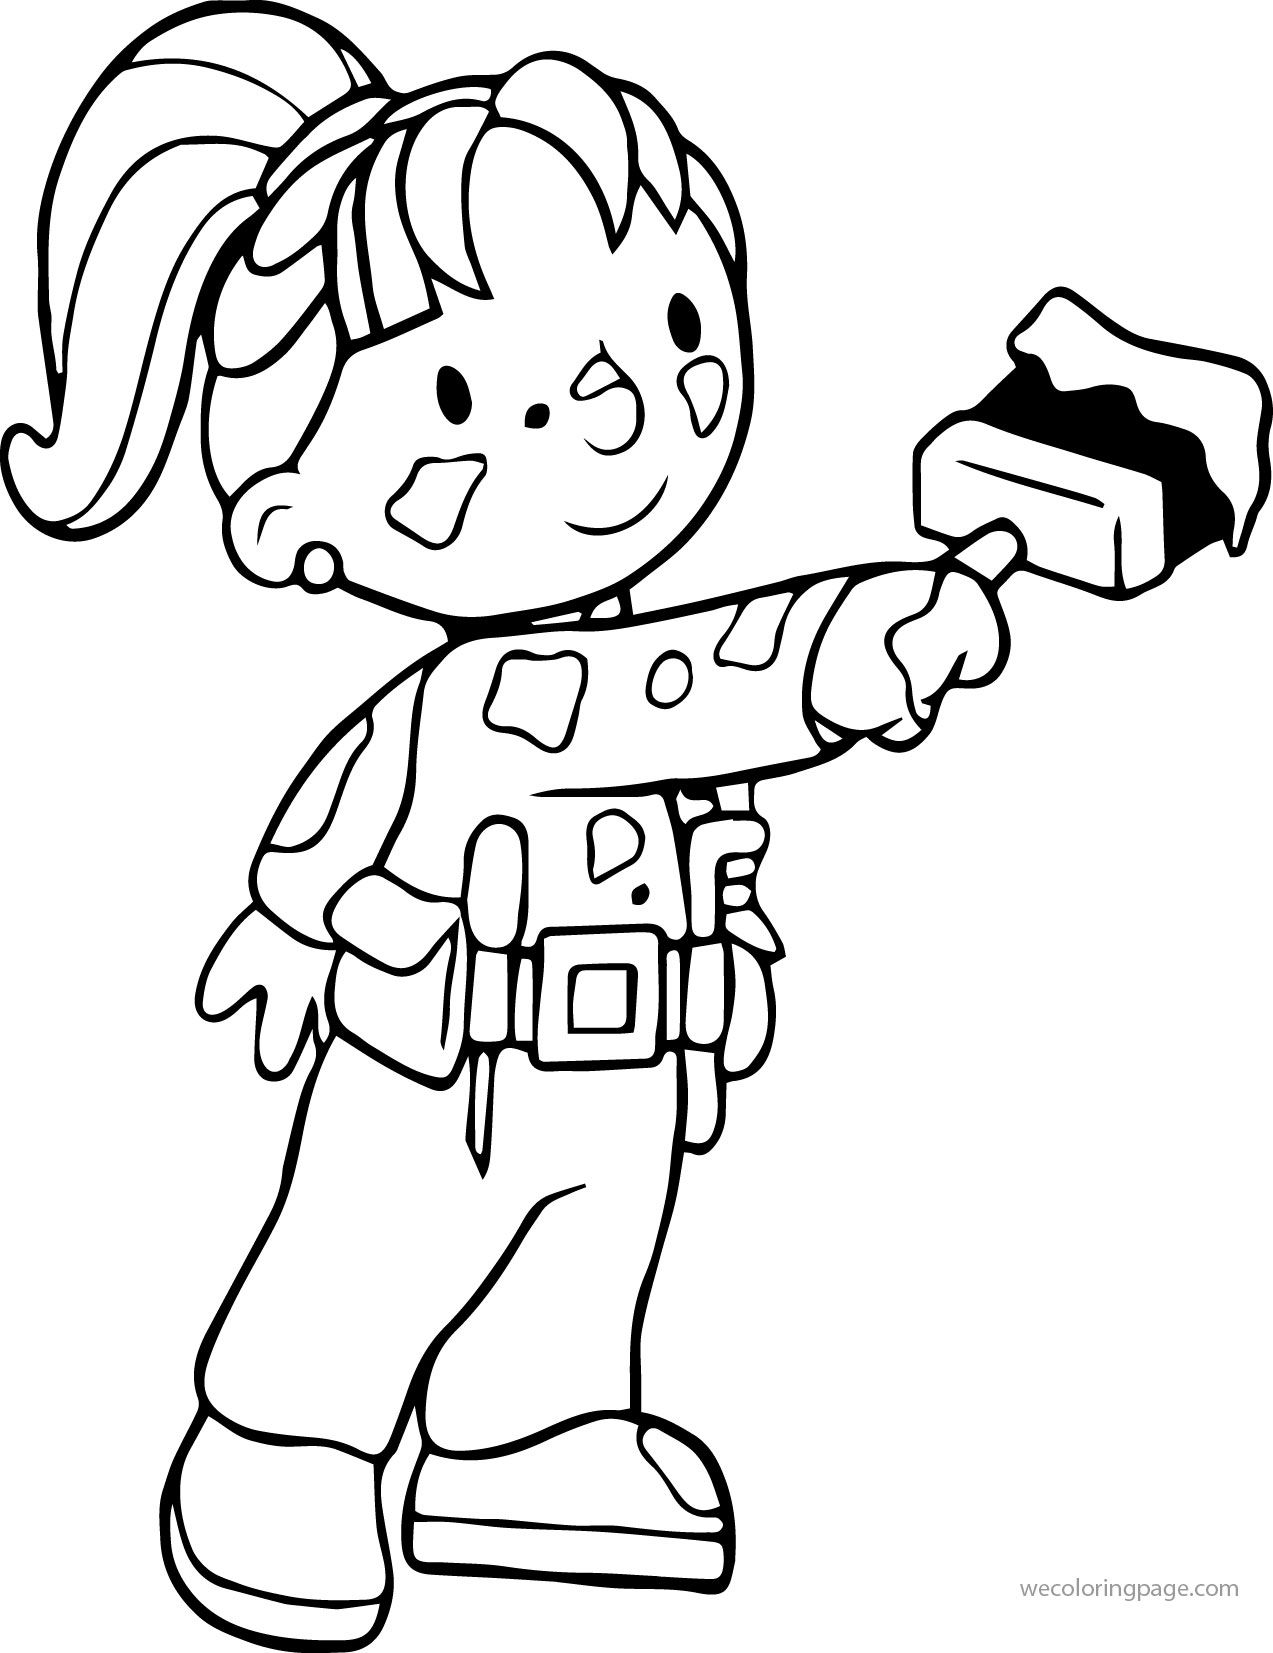 Awesome Bob The Builder Wendy Coloring Page Colorir Profissoes Bordado